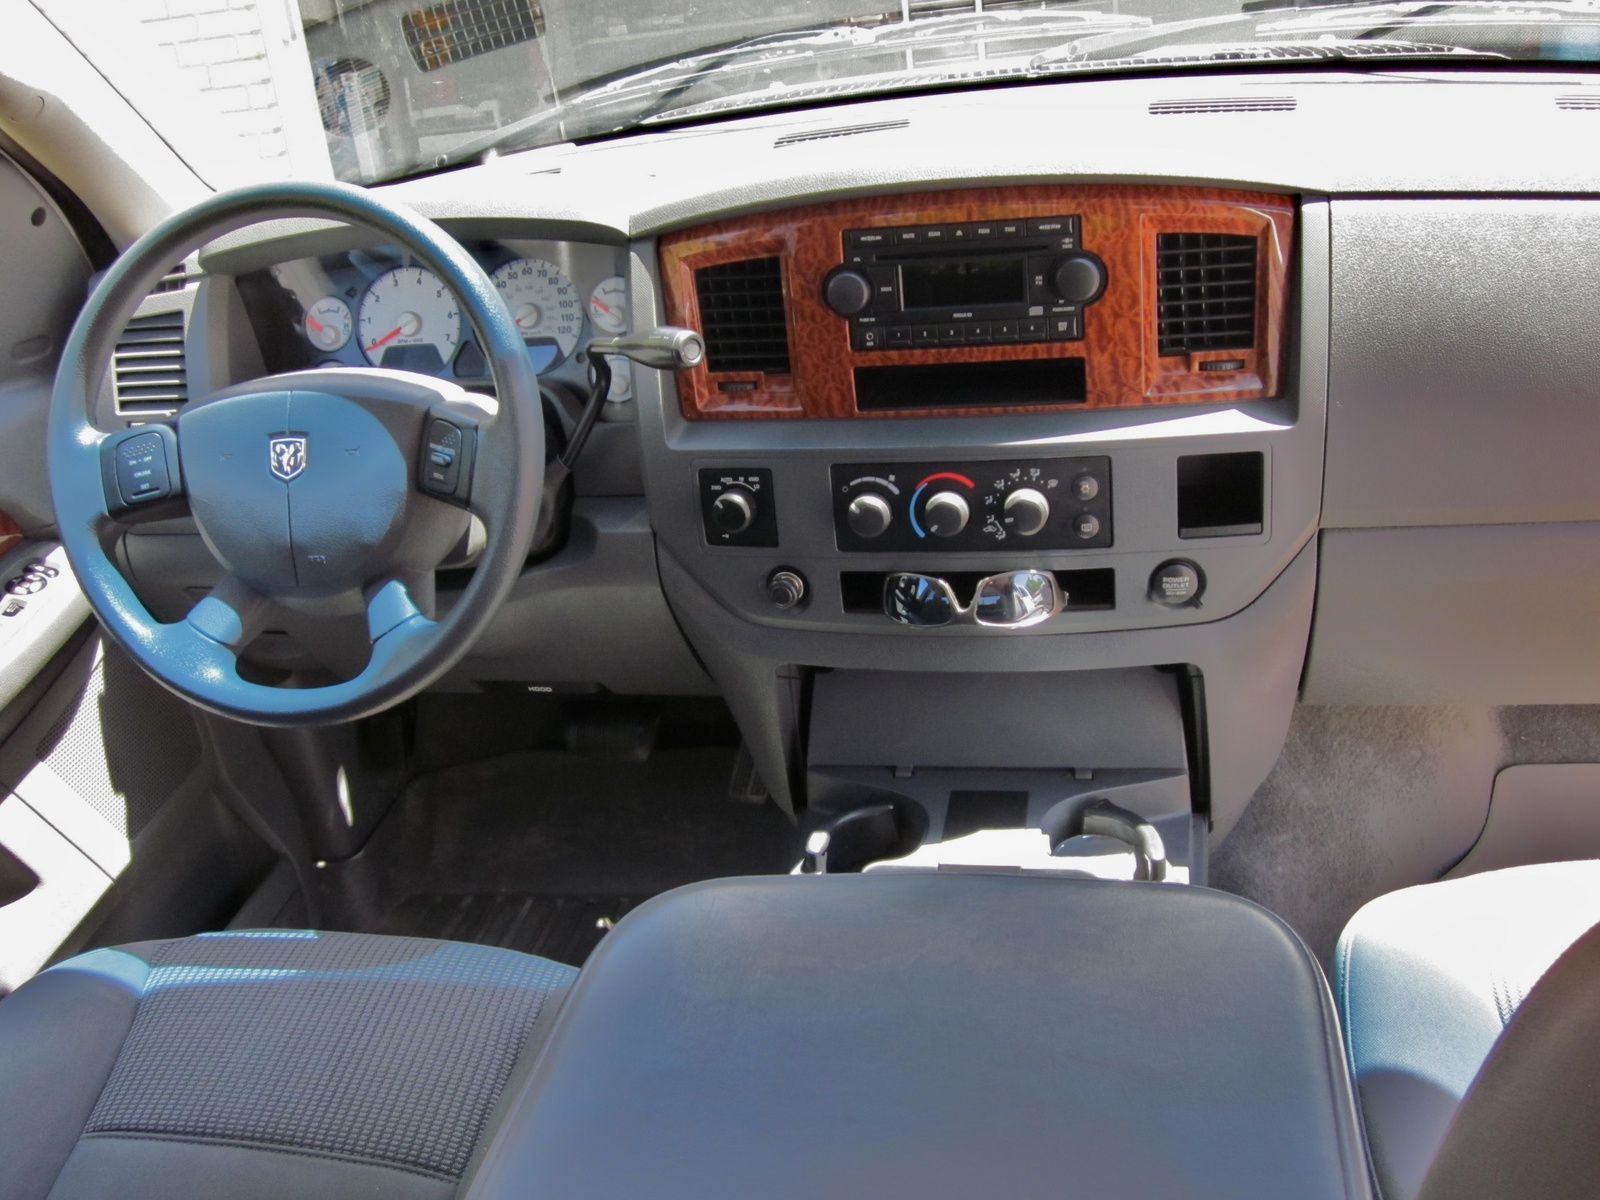 2006 dodge ram pickup 1500 interior pictures cargurus. Black Bedroom Furniture Sets. Home Design Ideas